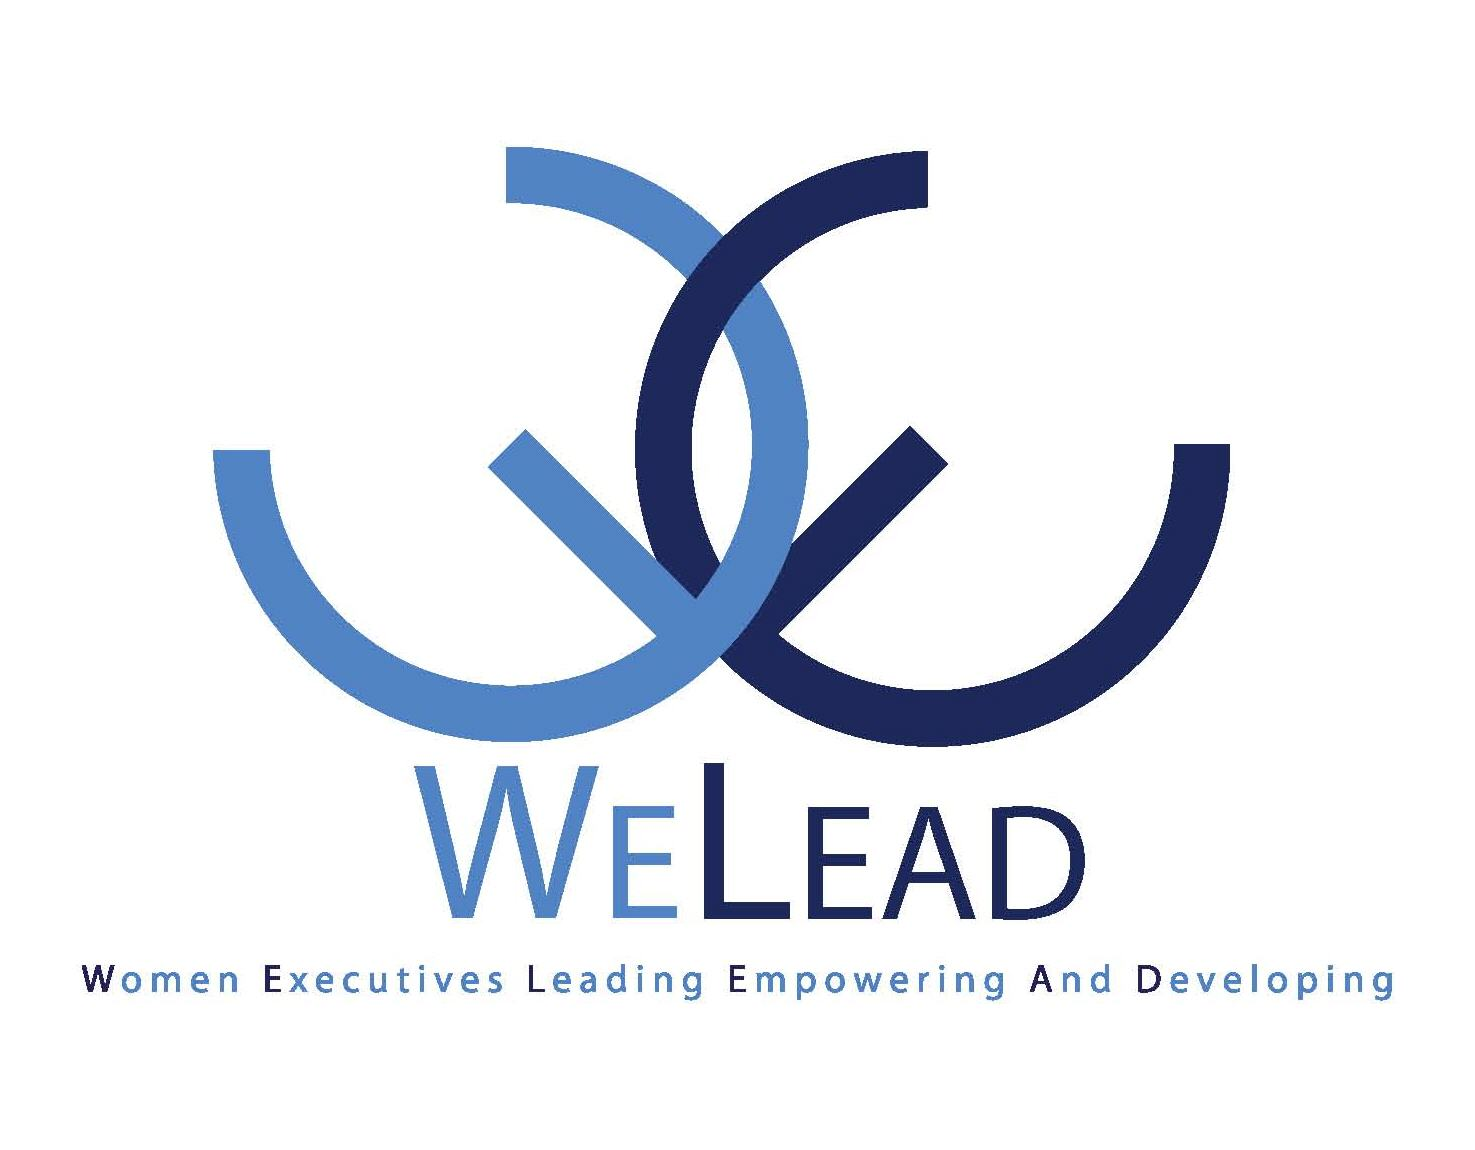 WELEAD - Women Executives Leading Empowering And Developing